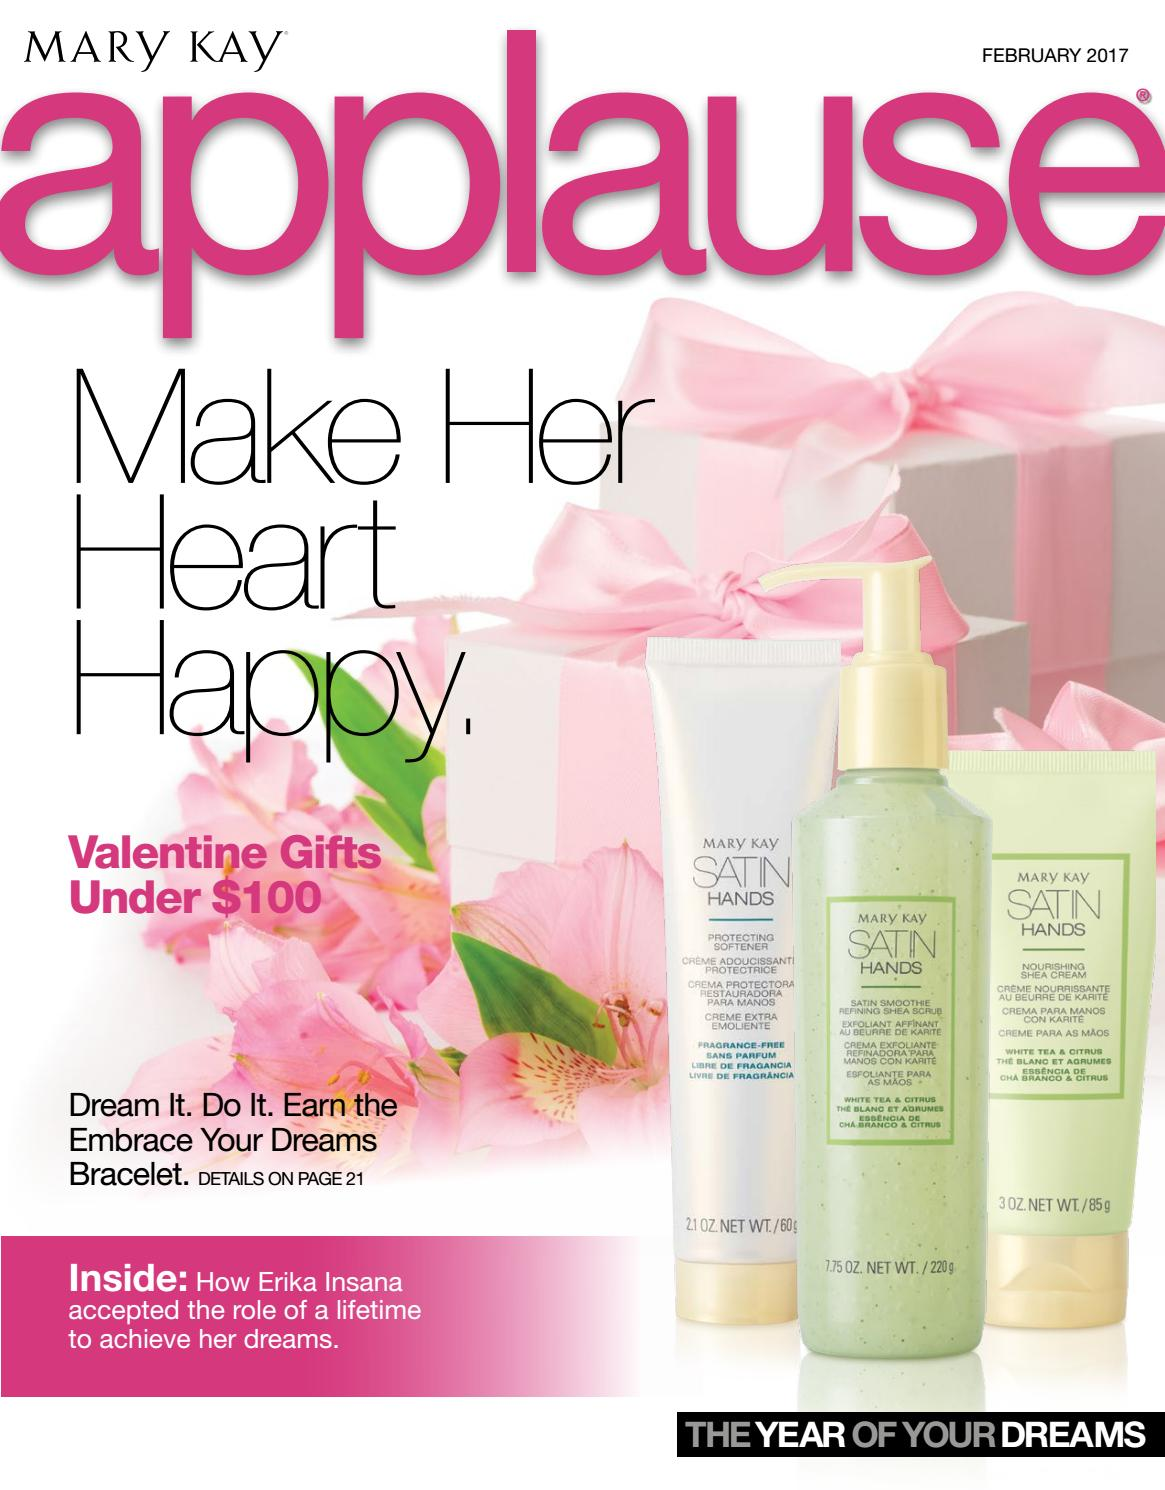 Mary kay online agreement on intouch - Applause February 2017